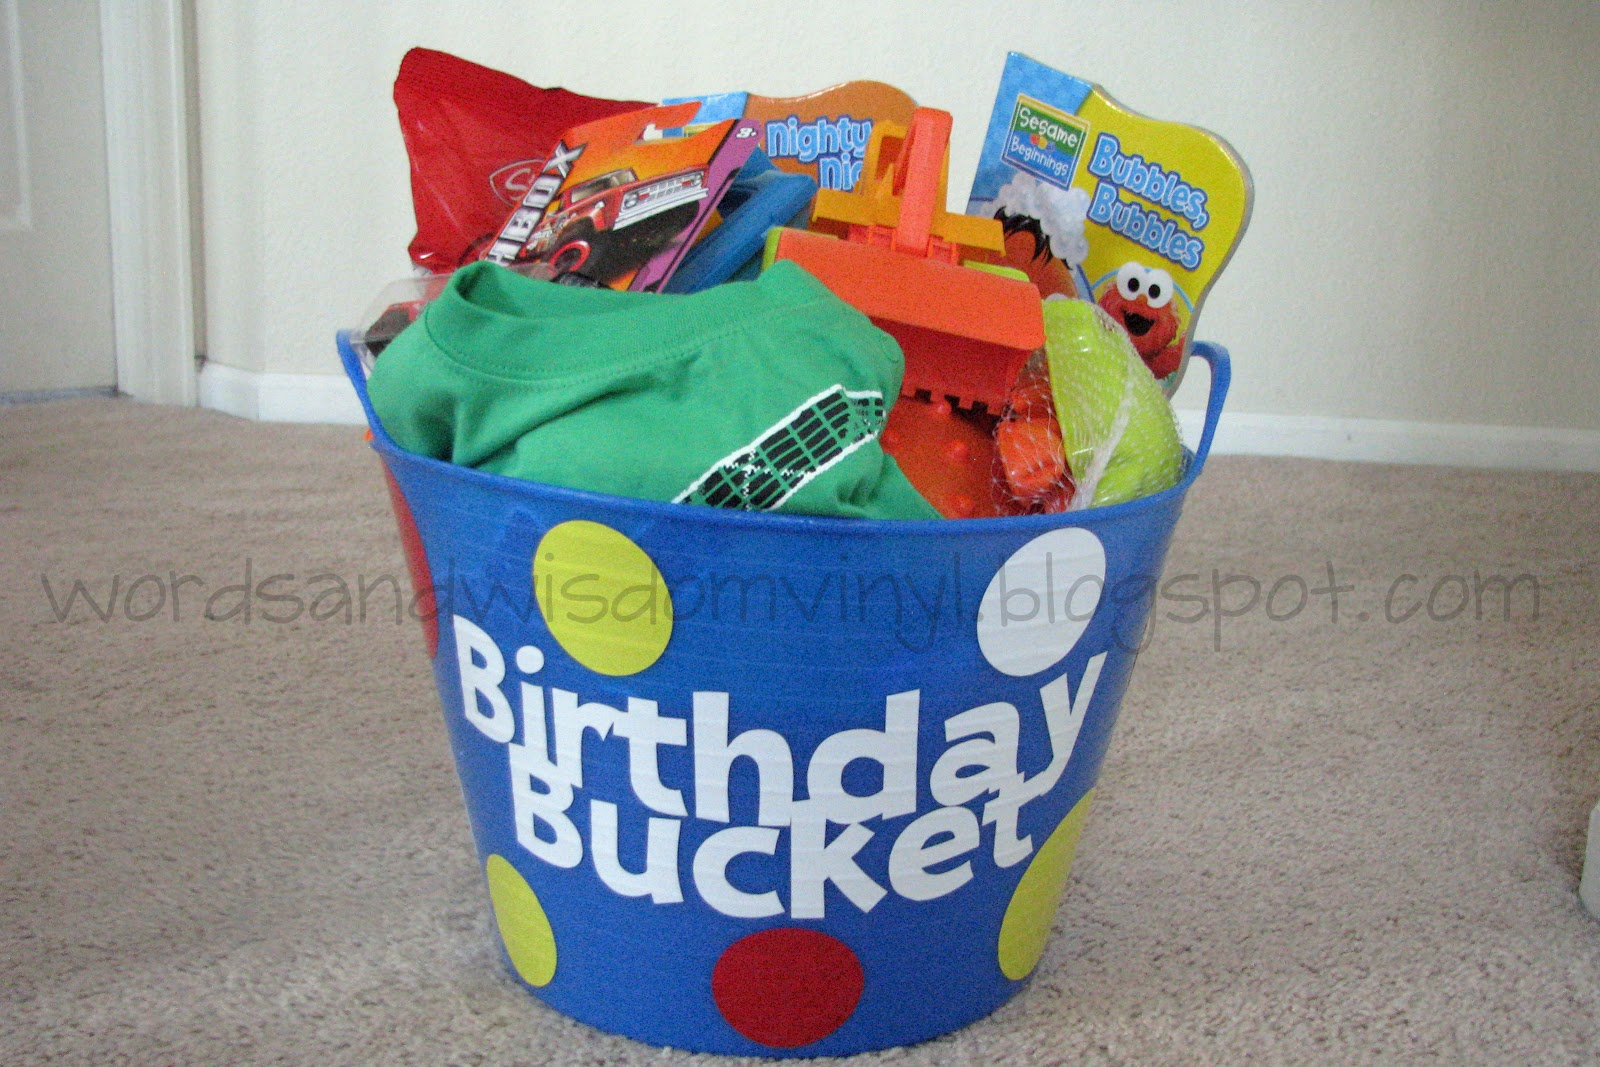 His Bucket Included A New Outfit Some Fun Bath Toys Books Matchbox Car Animal Crackers And Big Spikey Ball